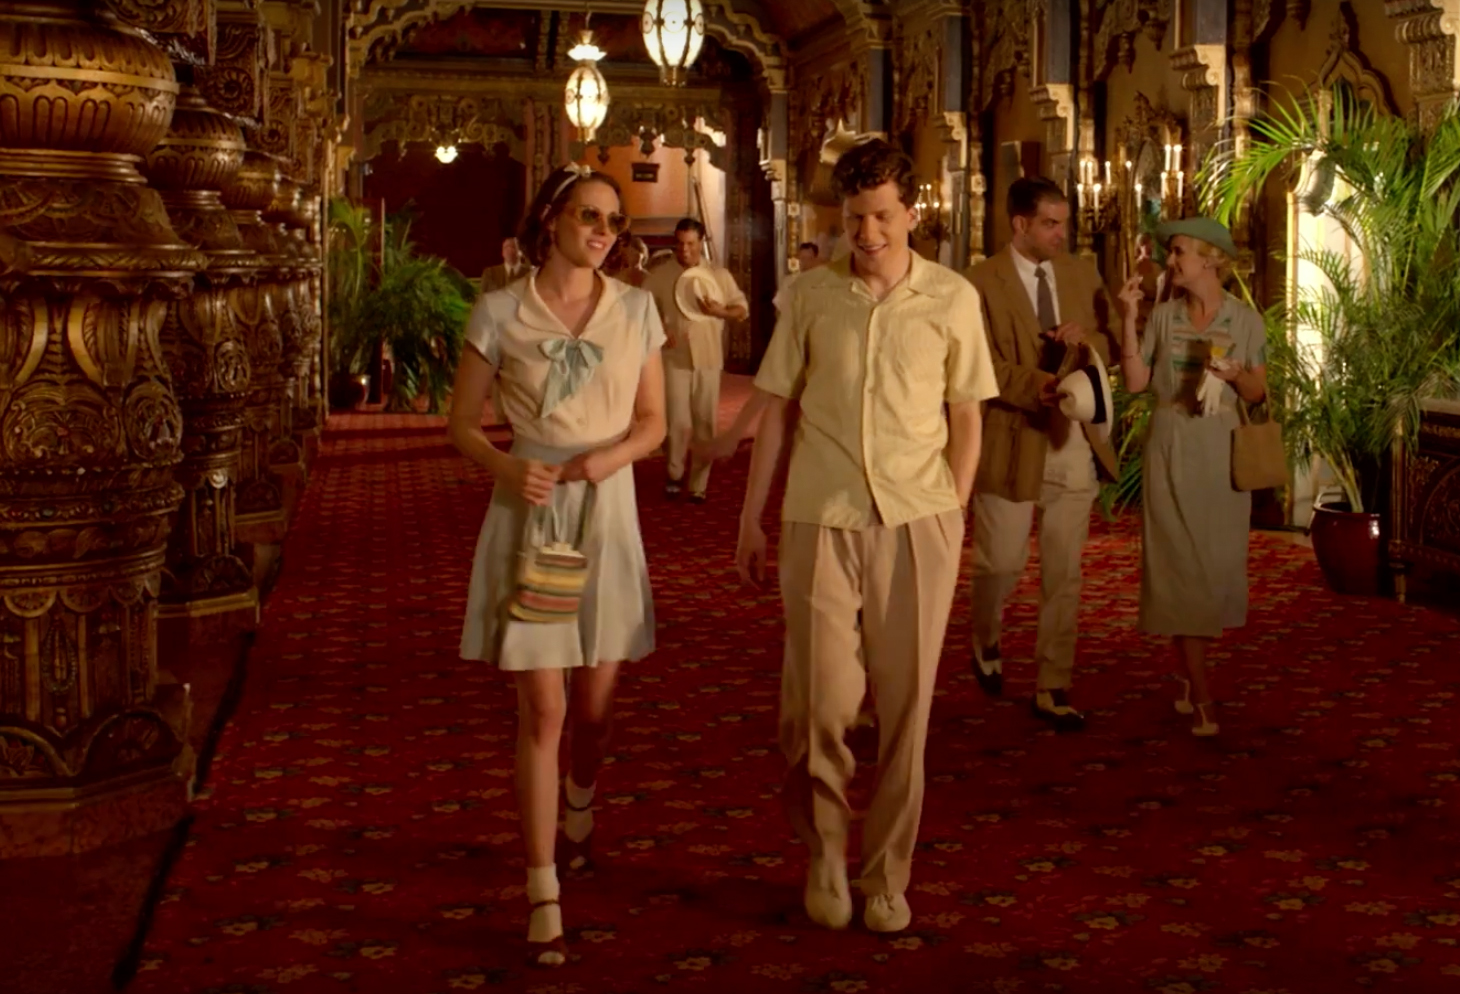 Kristen Stewart and Blake Lively Are Retro Fashion Goddesses in Woody Allen's New Film